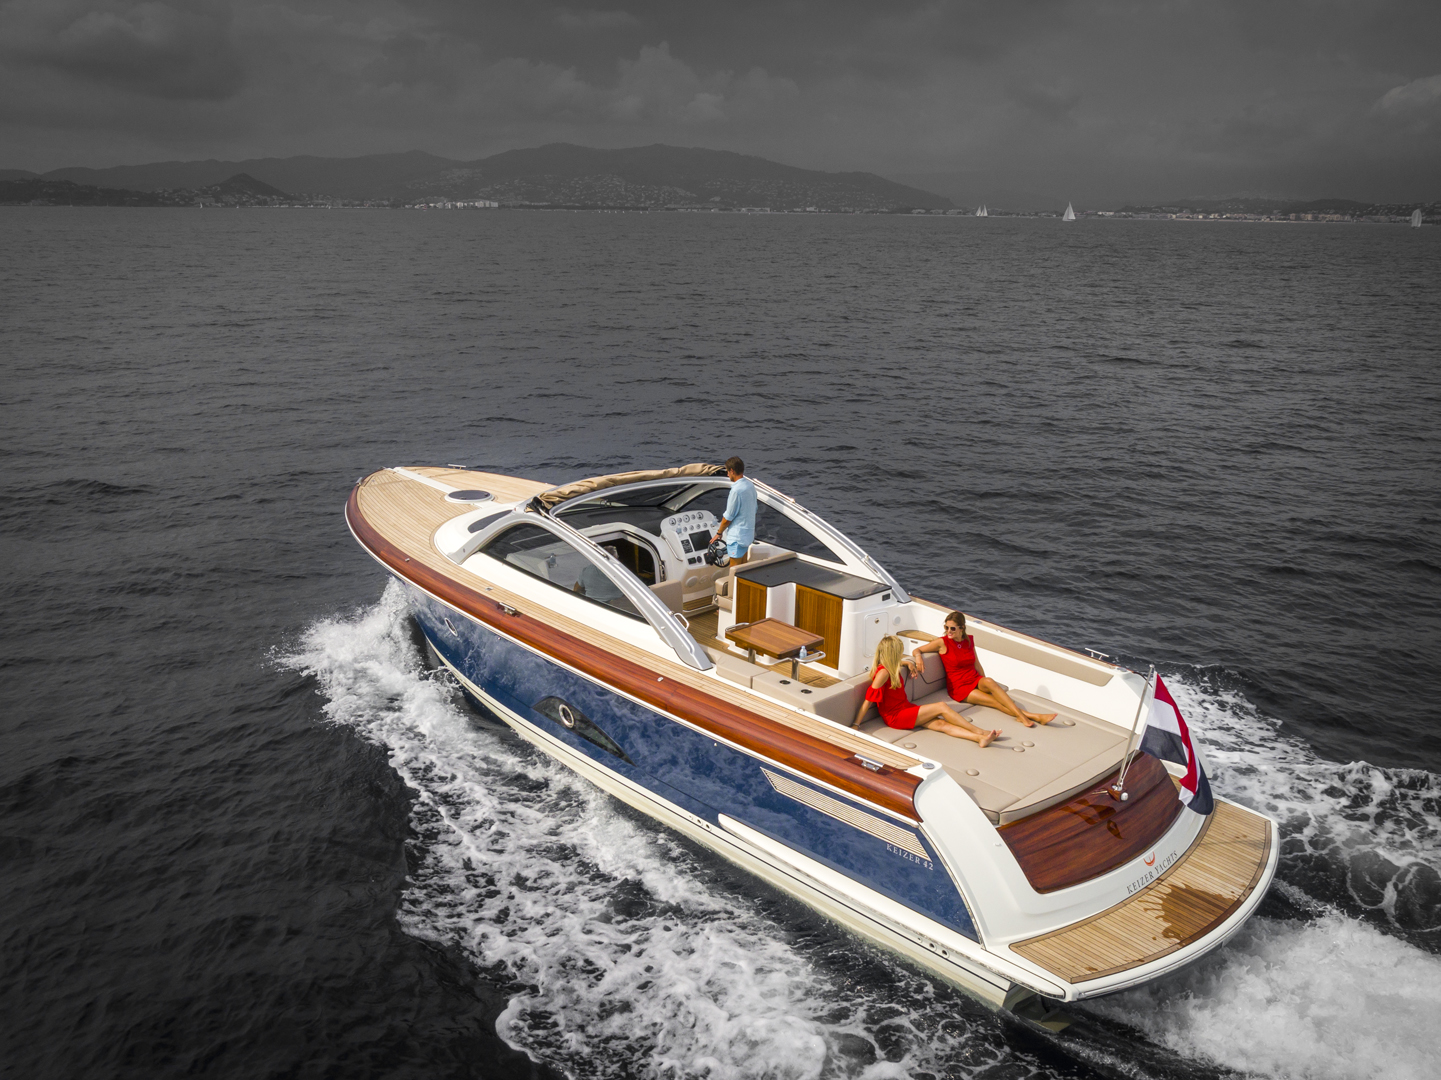 Keizer Yachts - 2 (1 of 1)